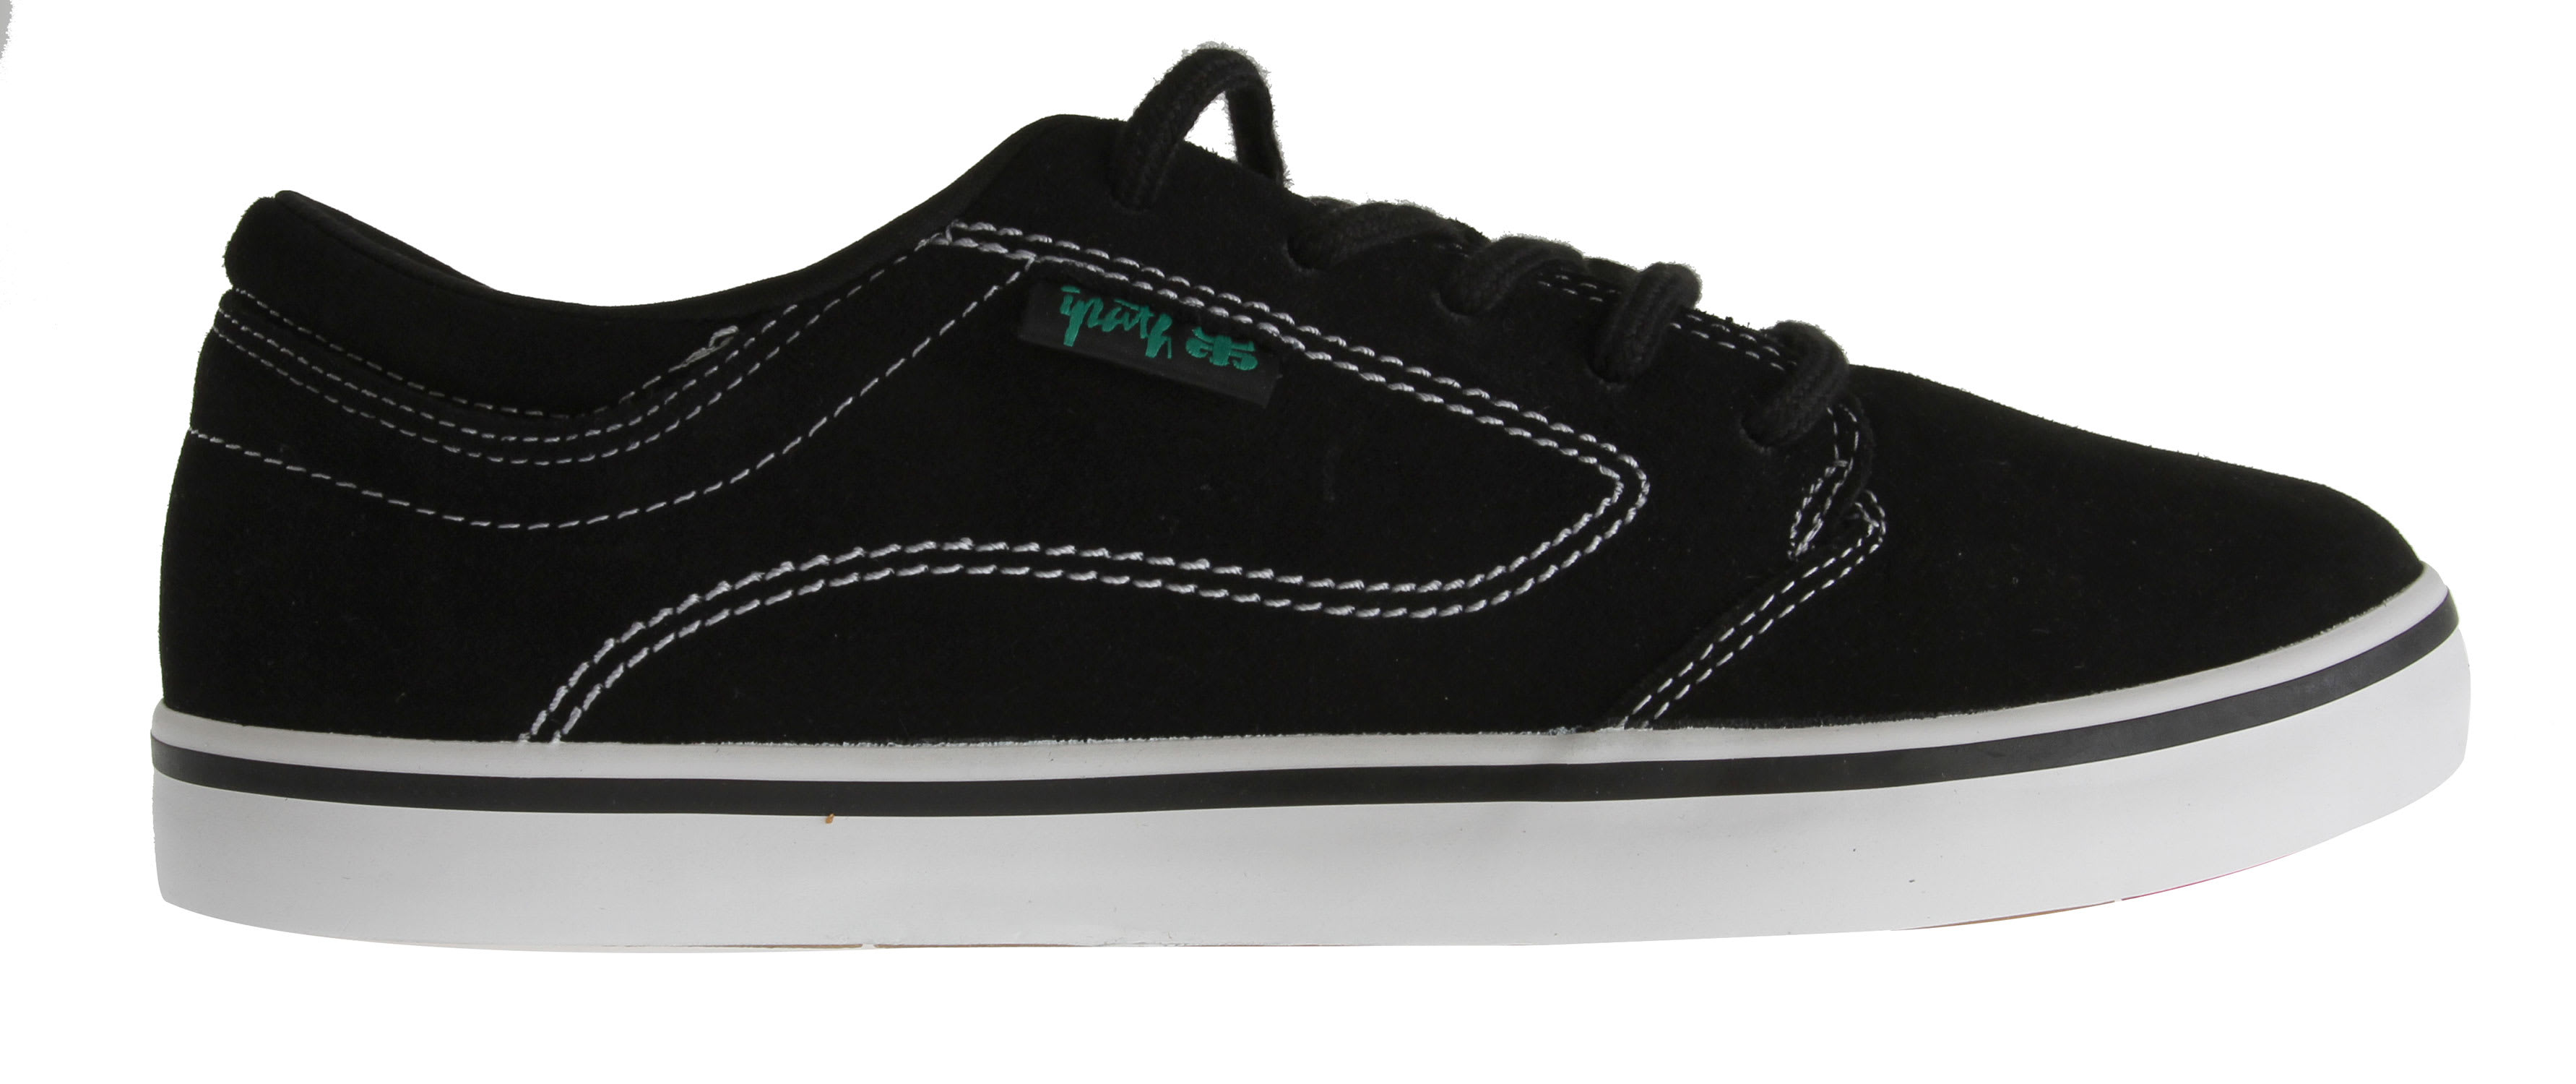 IPATH FOOTWEAR AND APPAREL - Rasta Sneakers | ThisNext